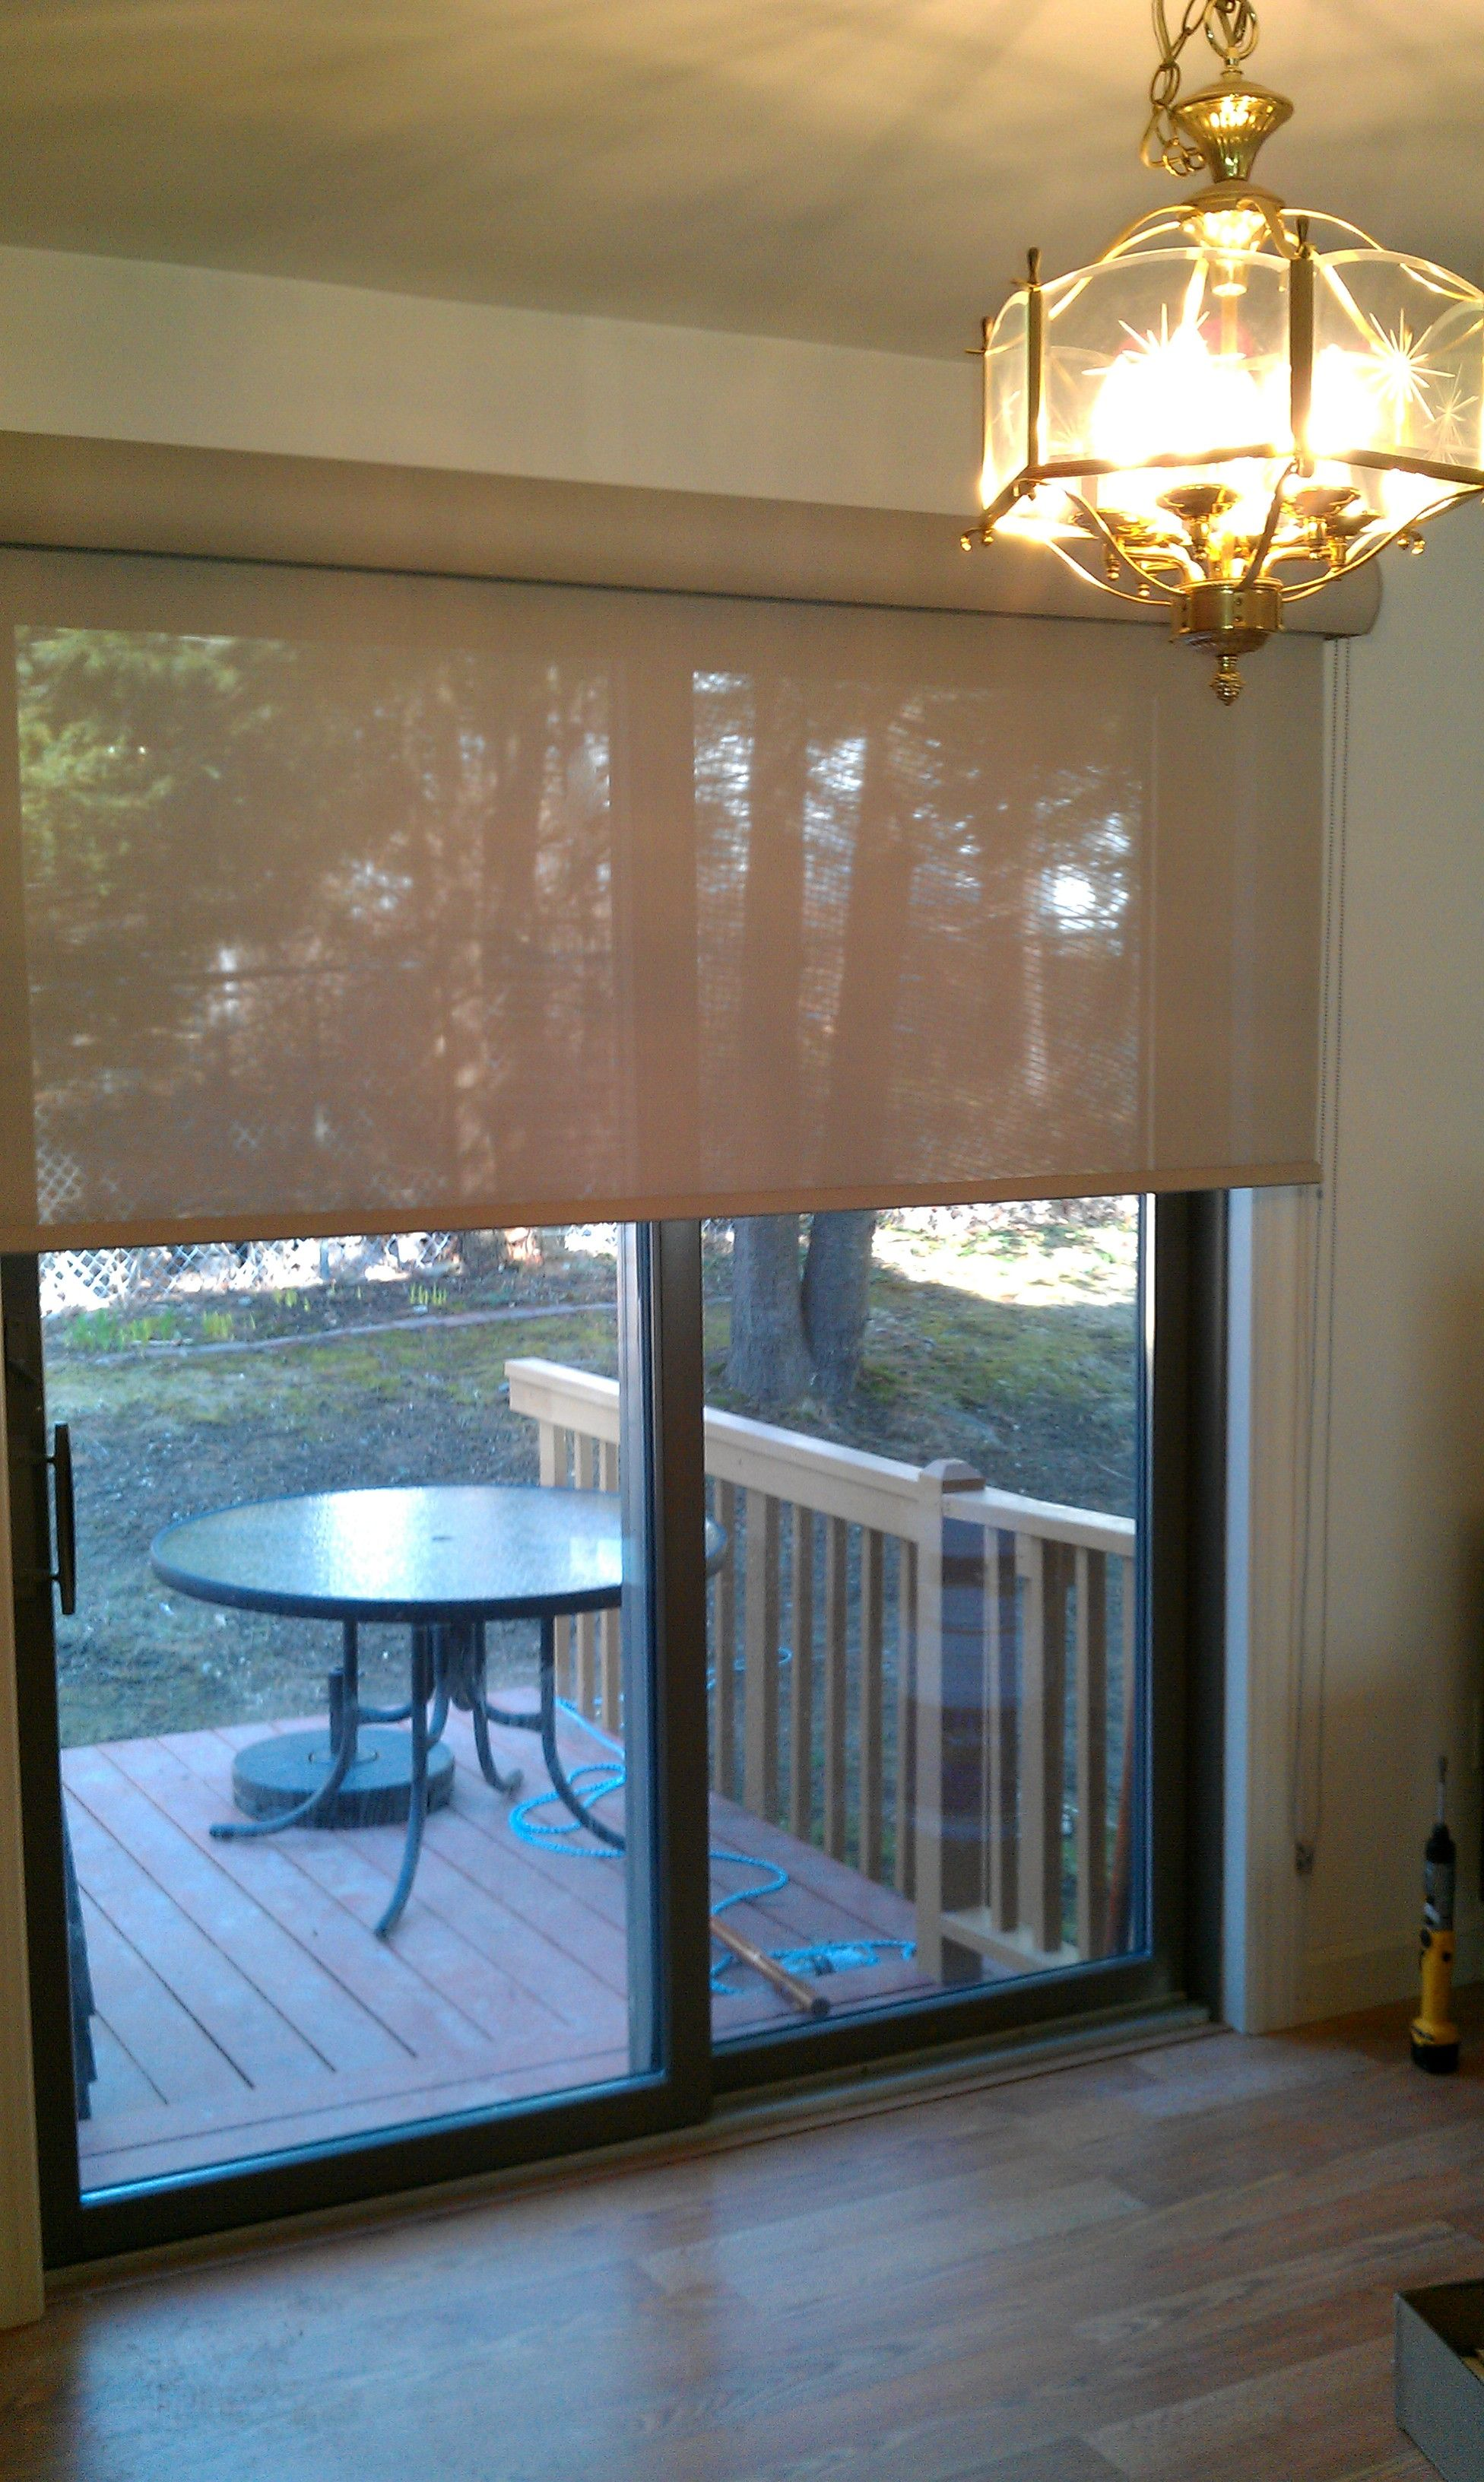 up bambooblinds patio designs best roll door club bamboo blinds of fresh rollup